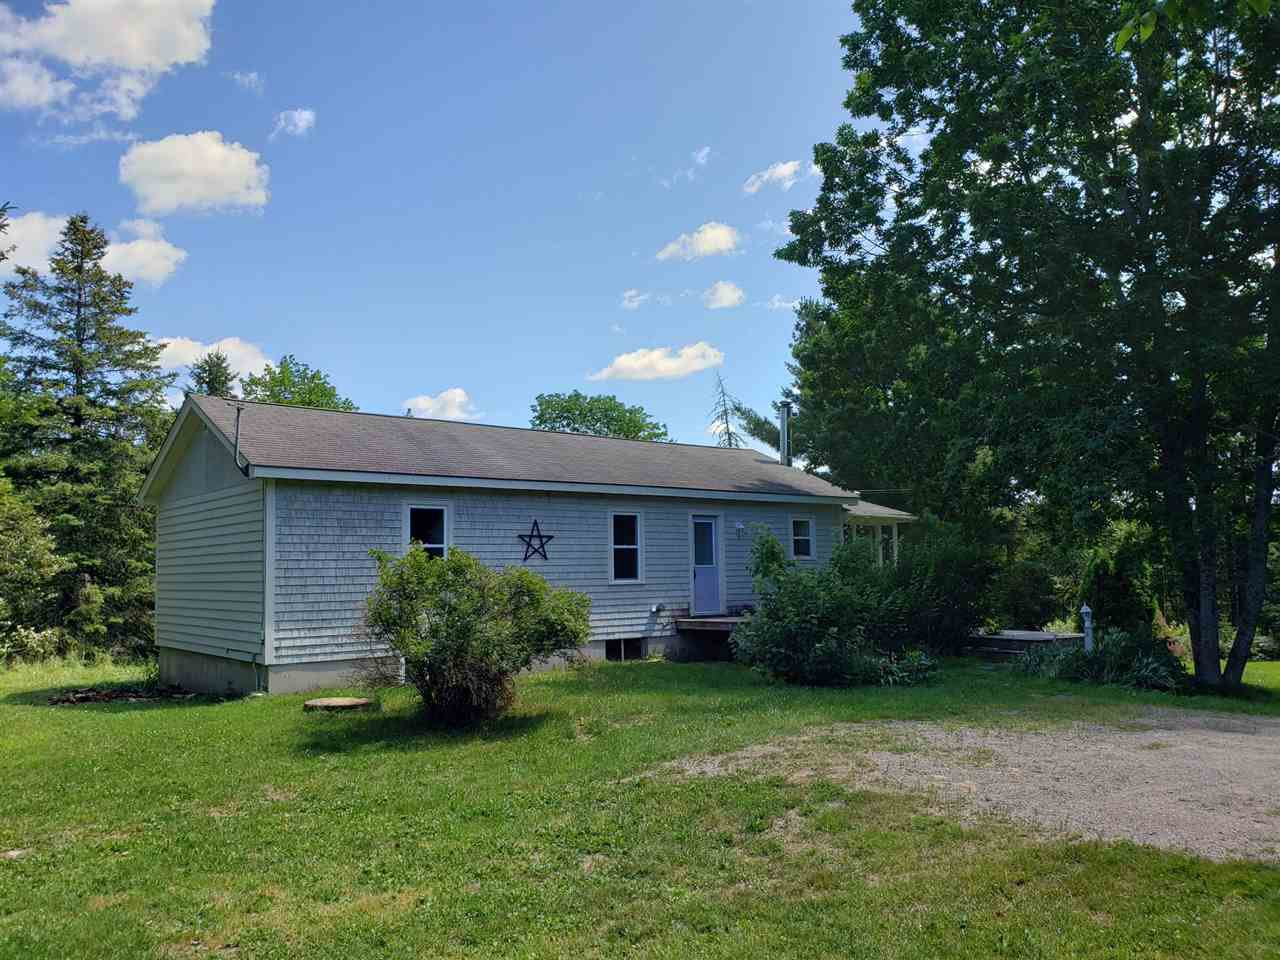 Main Photo: 2968 Aylesford Road in Lake Paul: 404-Kings County Residential for sale (Annapolis Valley)  : MLS®# 201915287